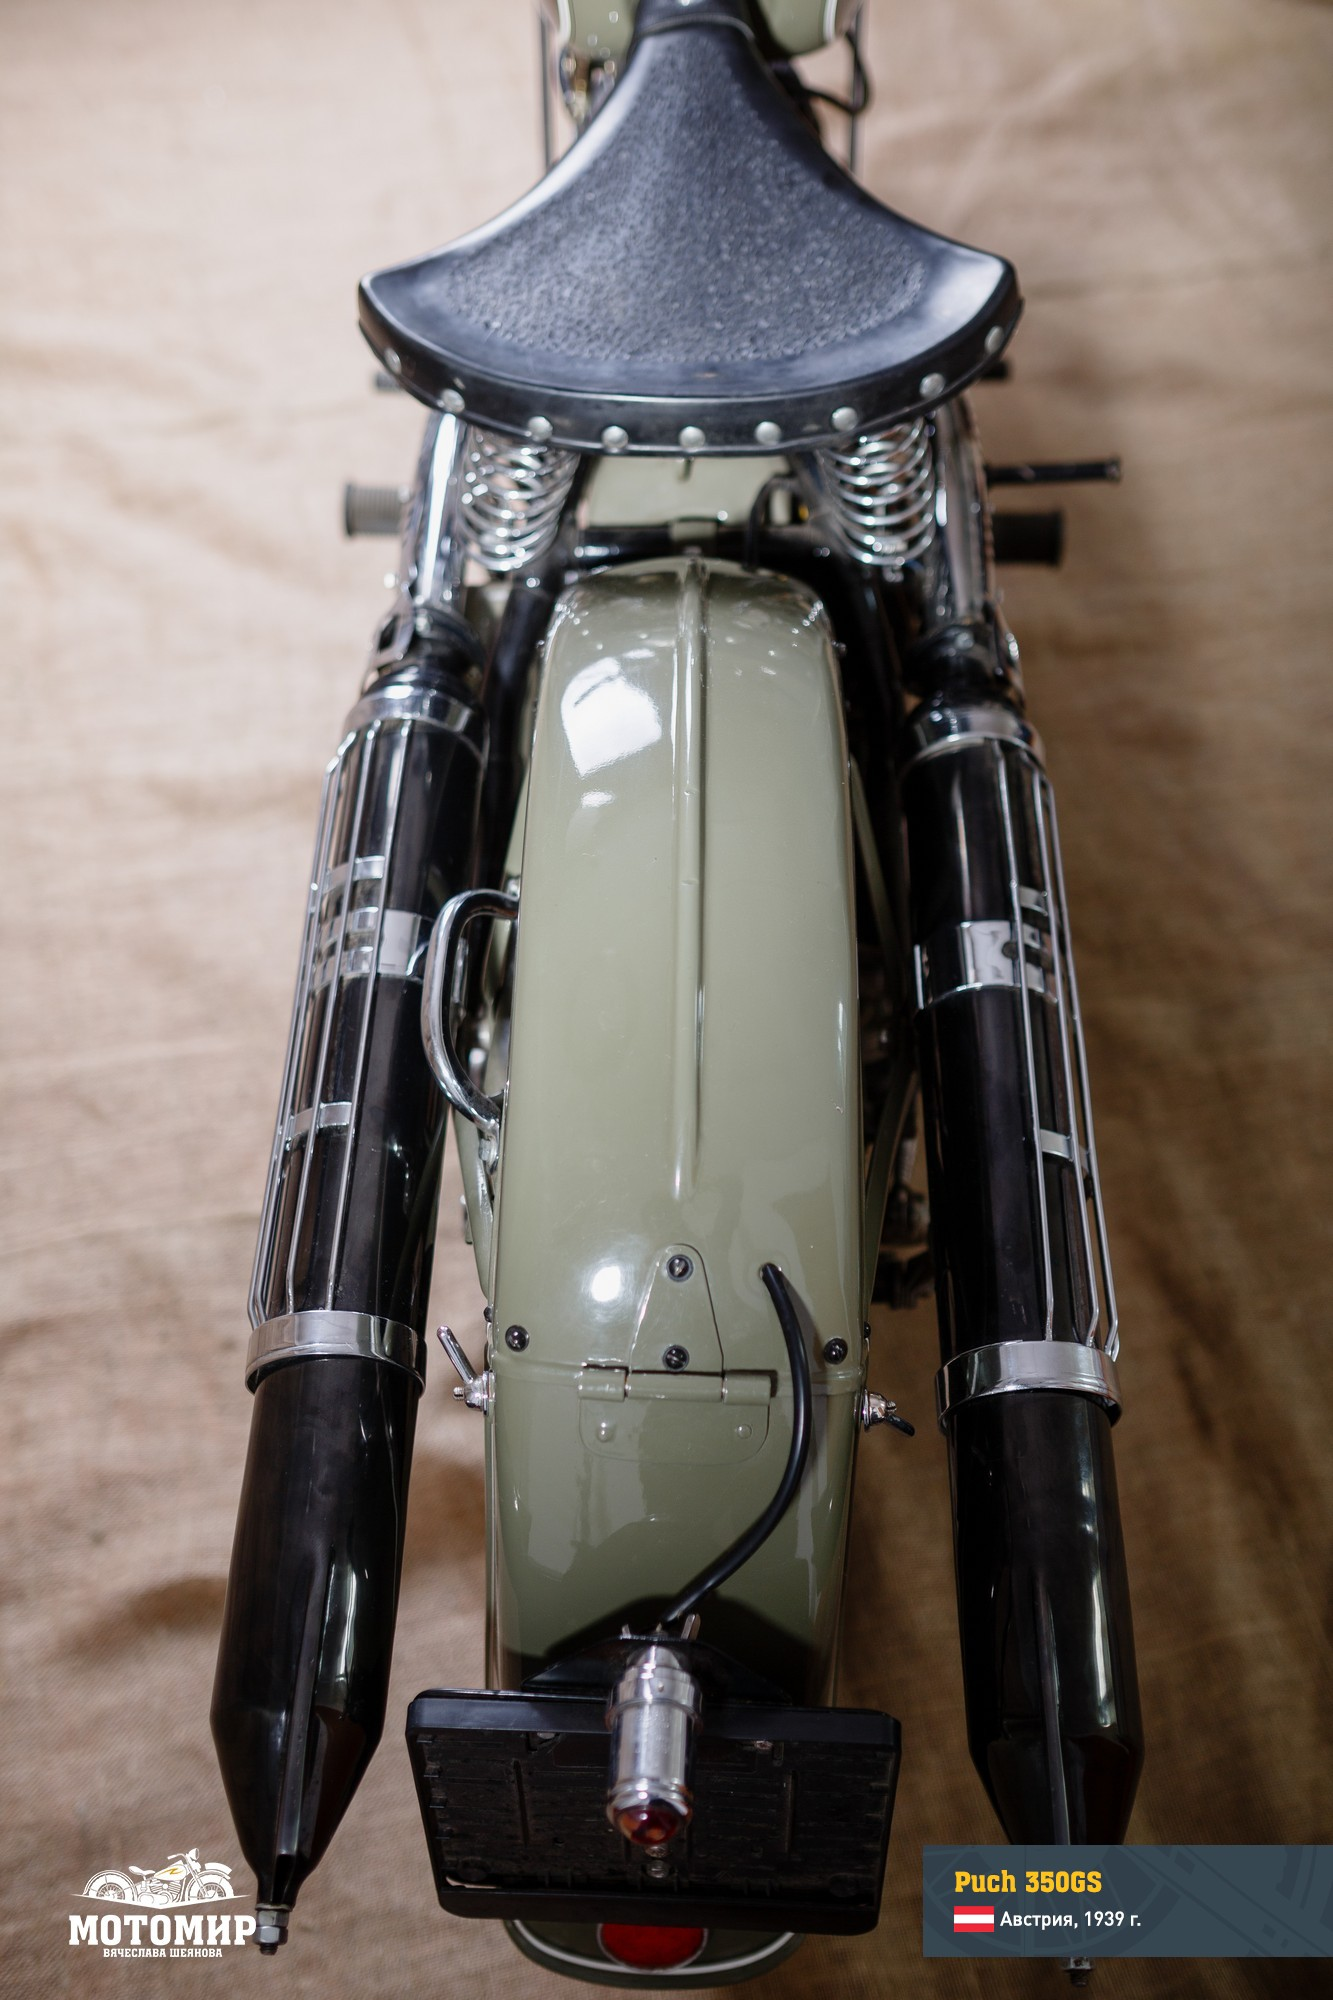 puch-350gs-201601-web-39